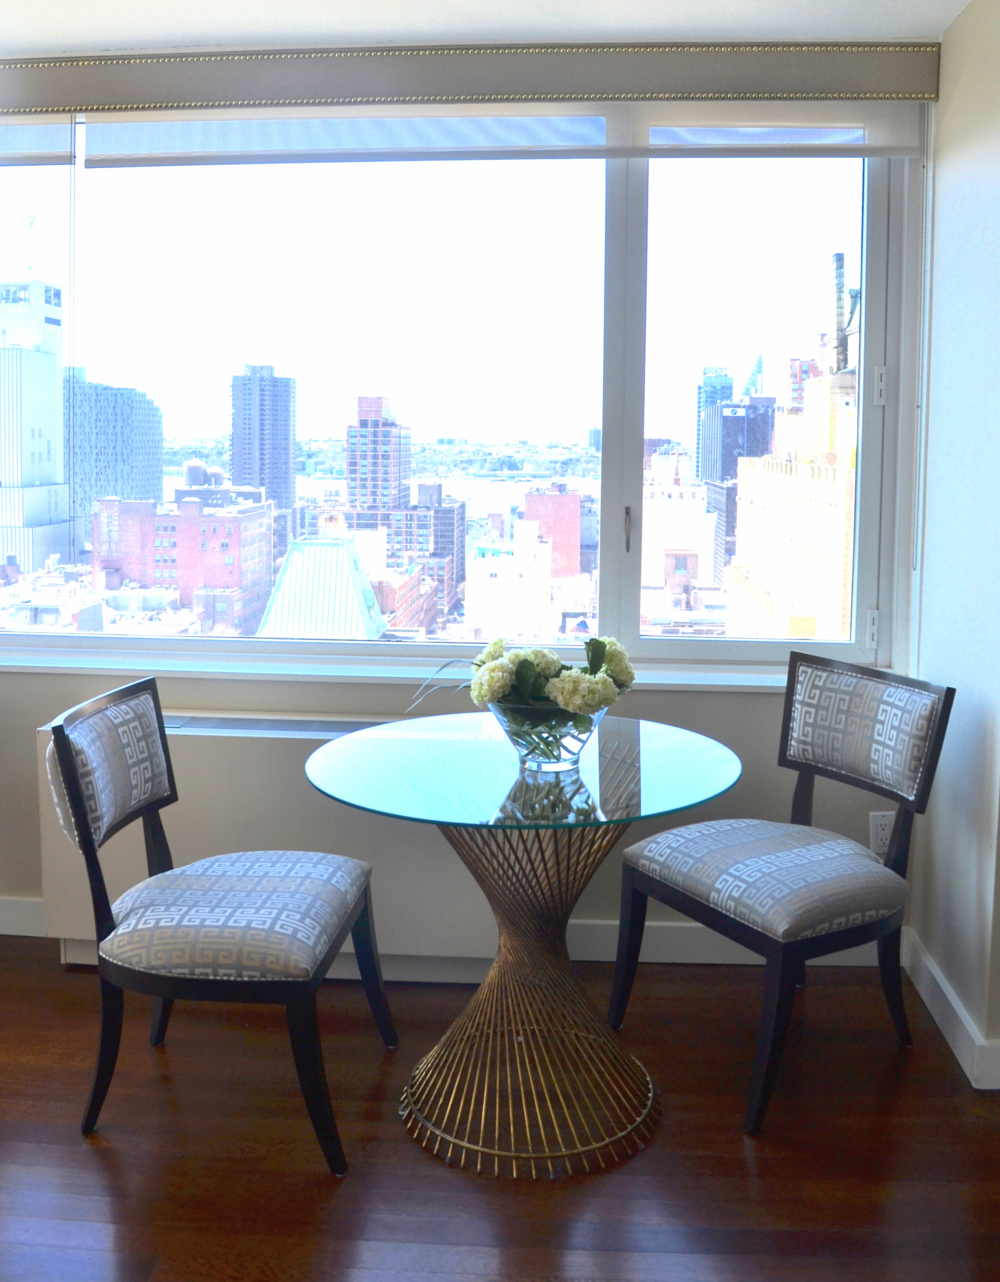 I fell in love with this modern greek key fabric and klismo style chairs, so I'm glad my clients did as well!